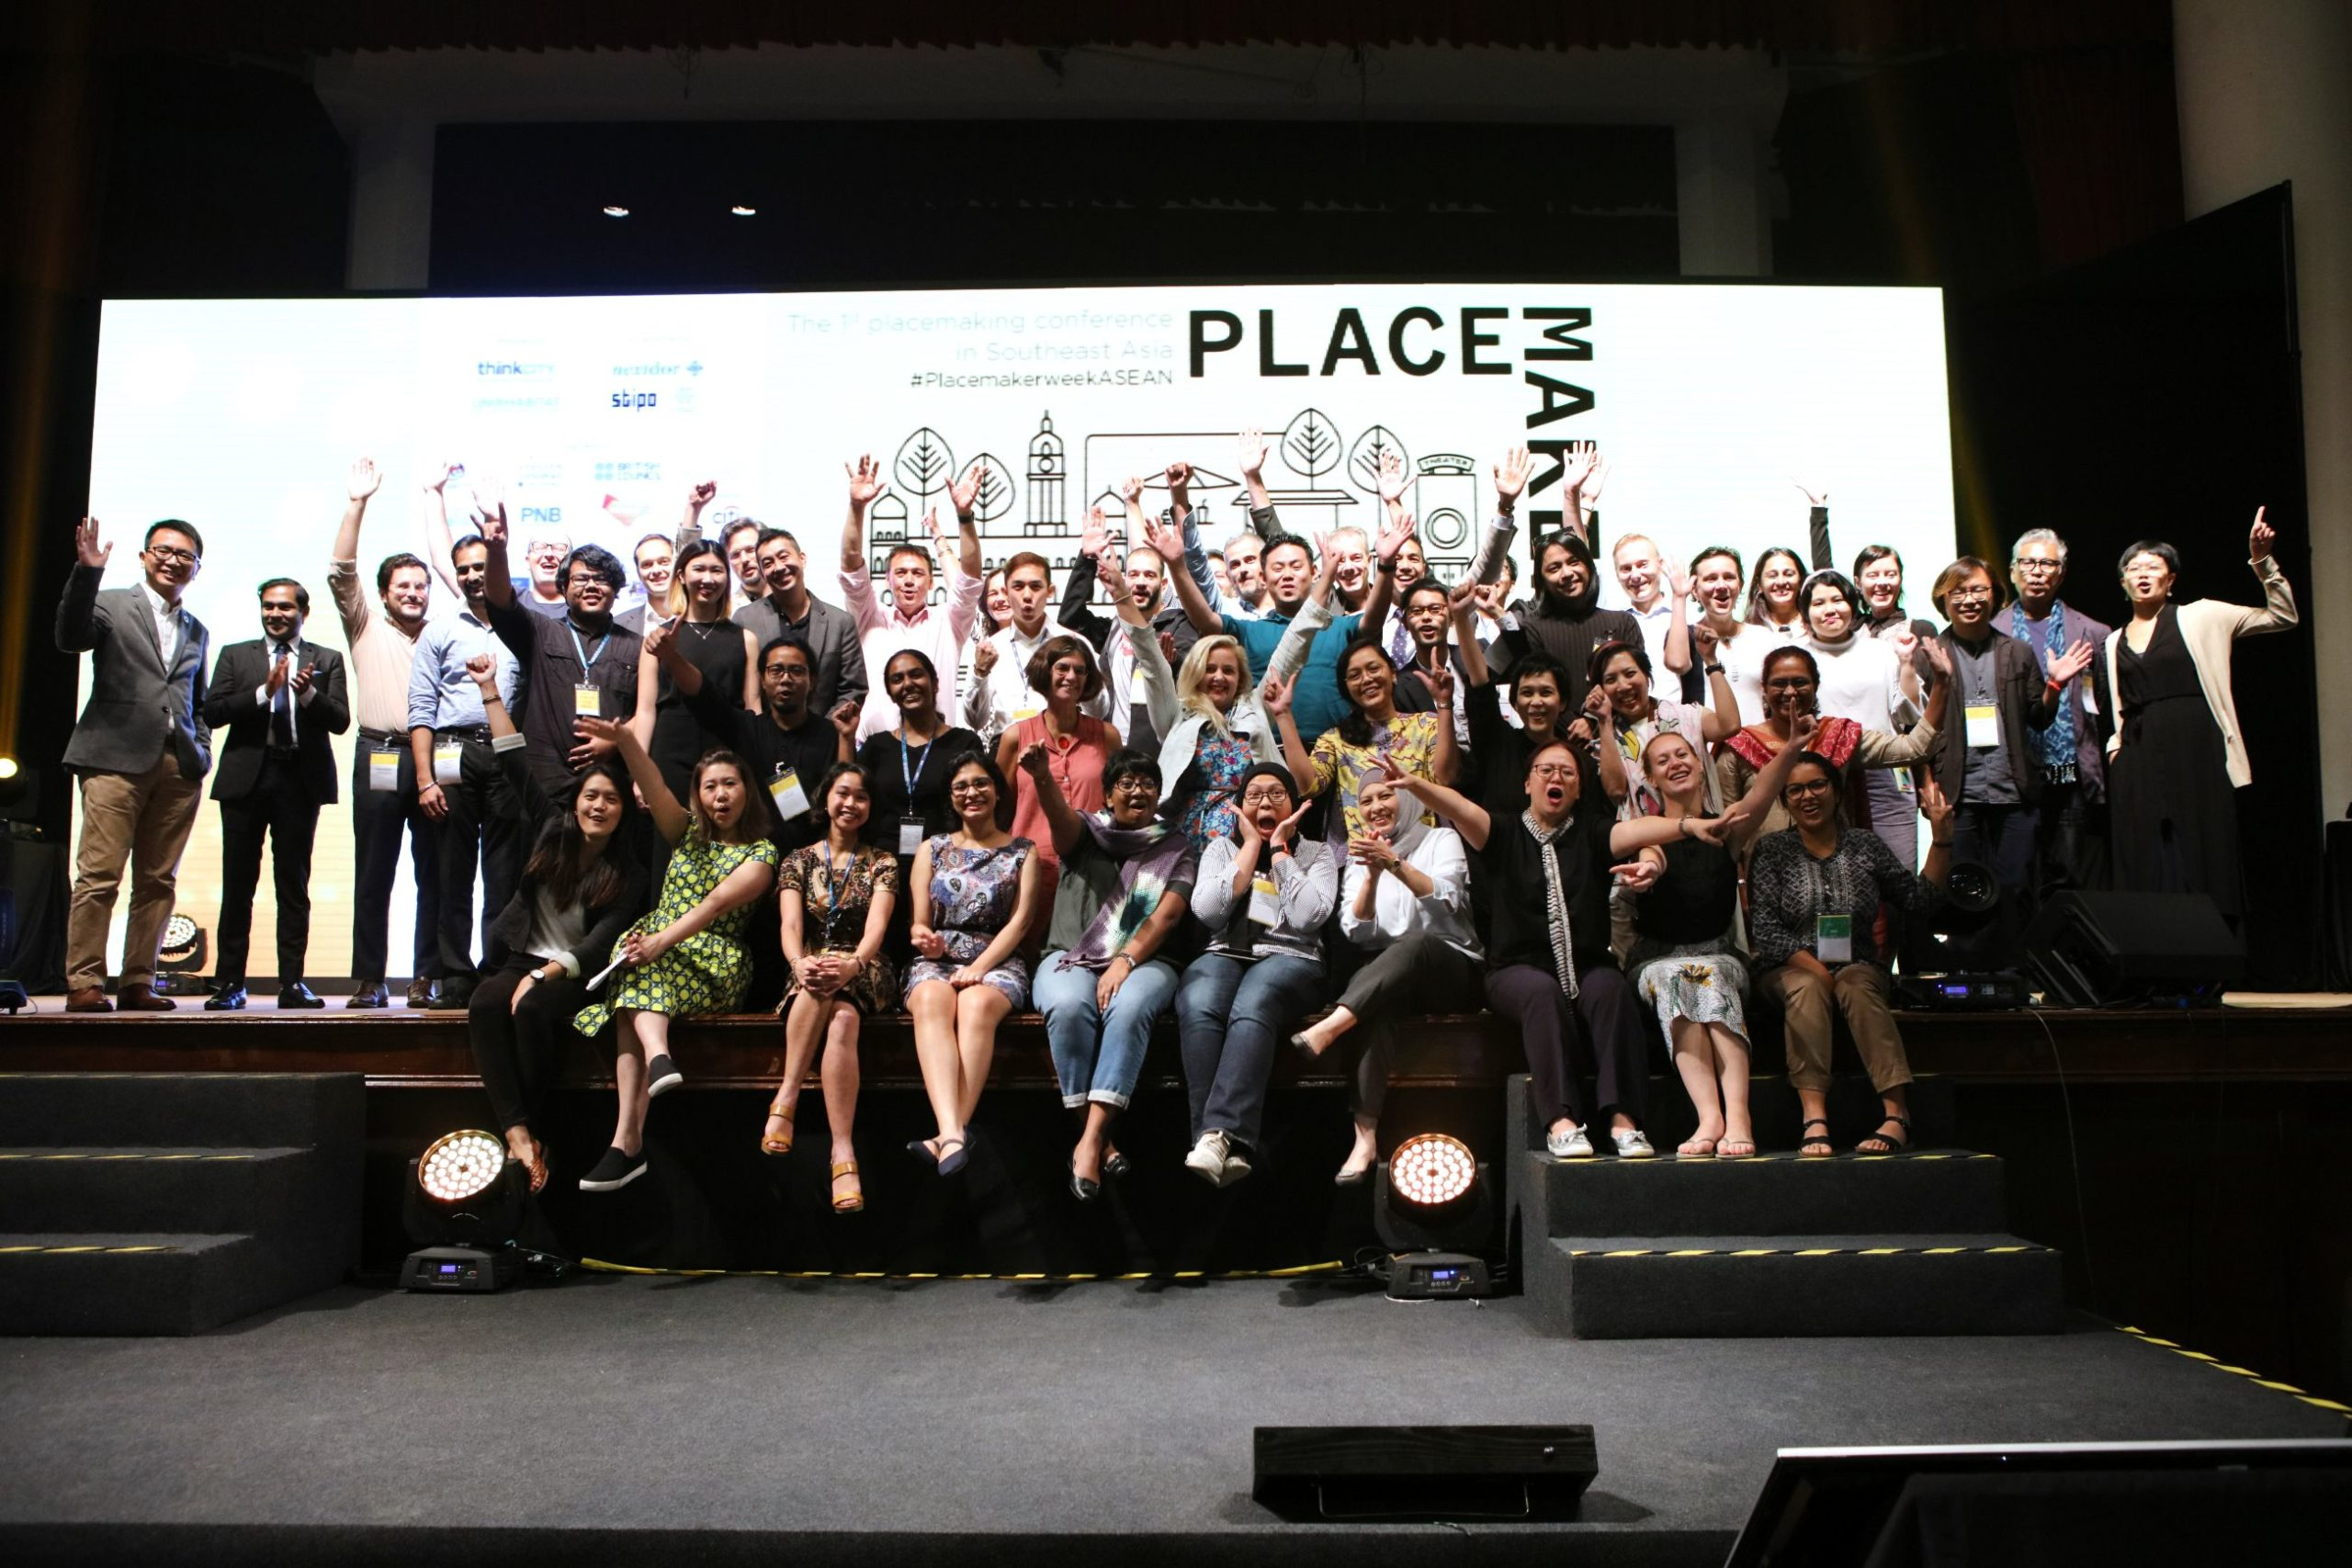 Placemaker Week ASEAN saw over 400 individuals from 20 countries participating in knowledge sharing on the practice of placemaking